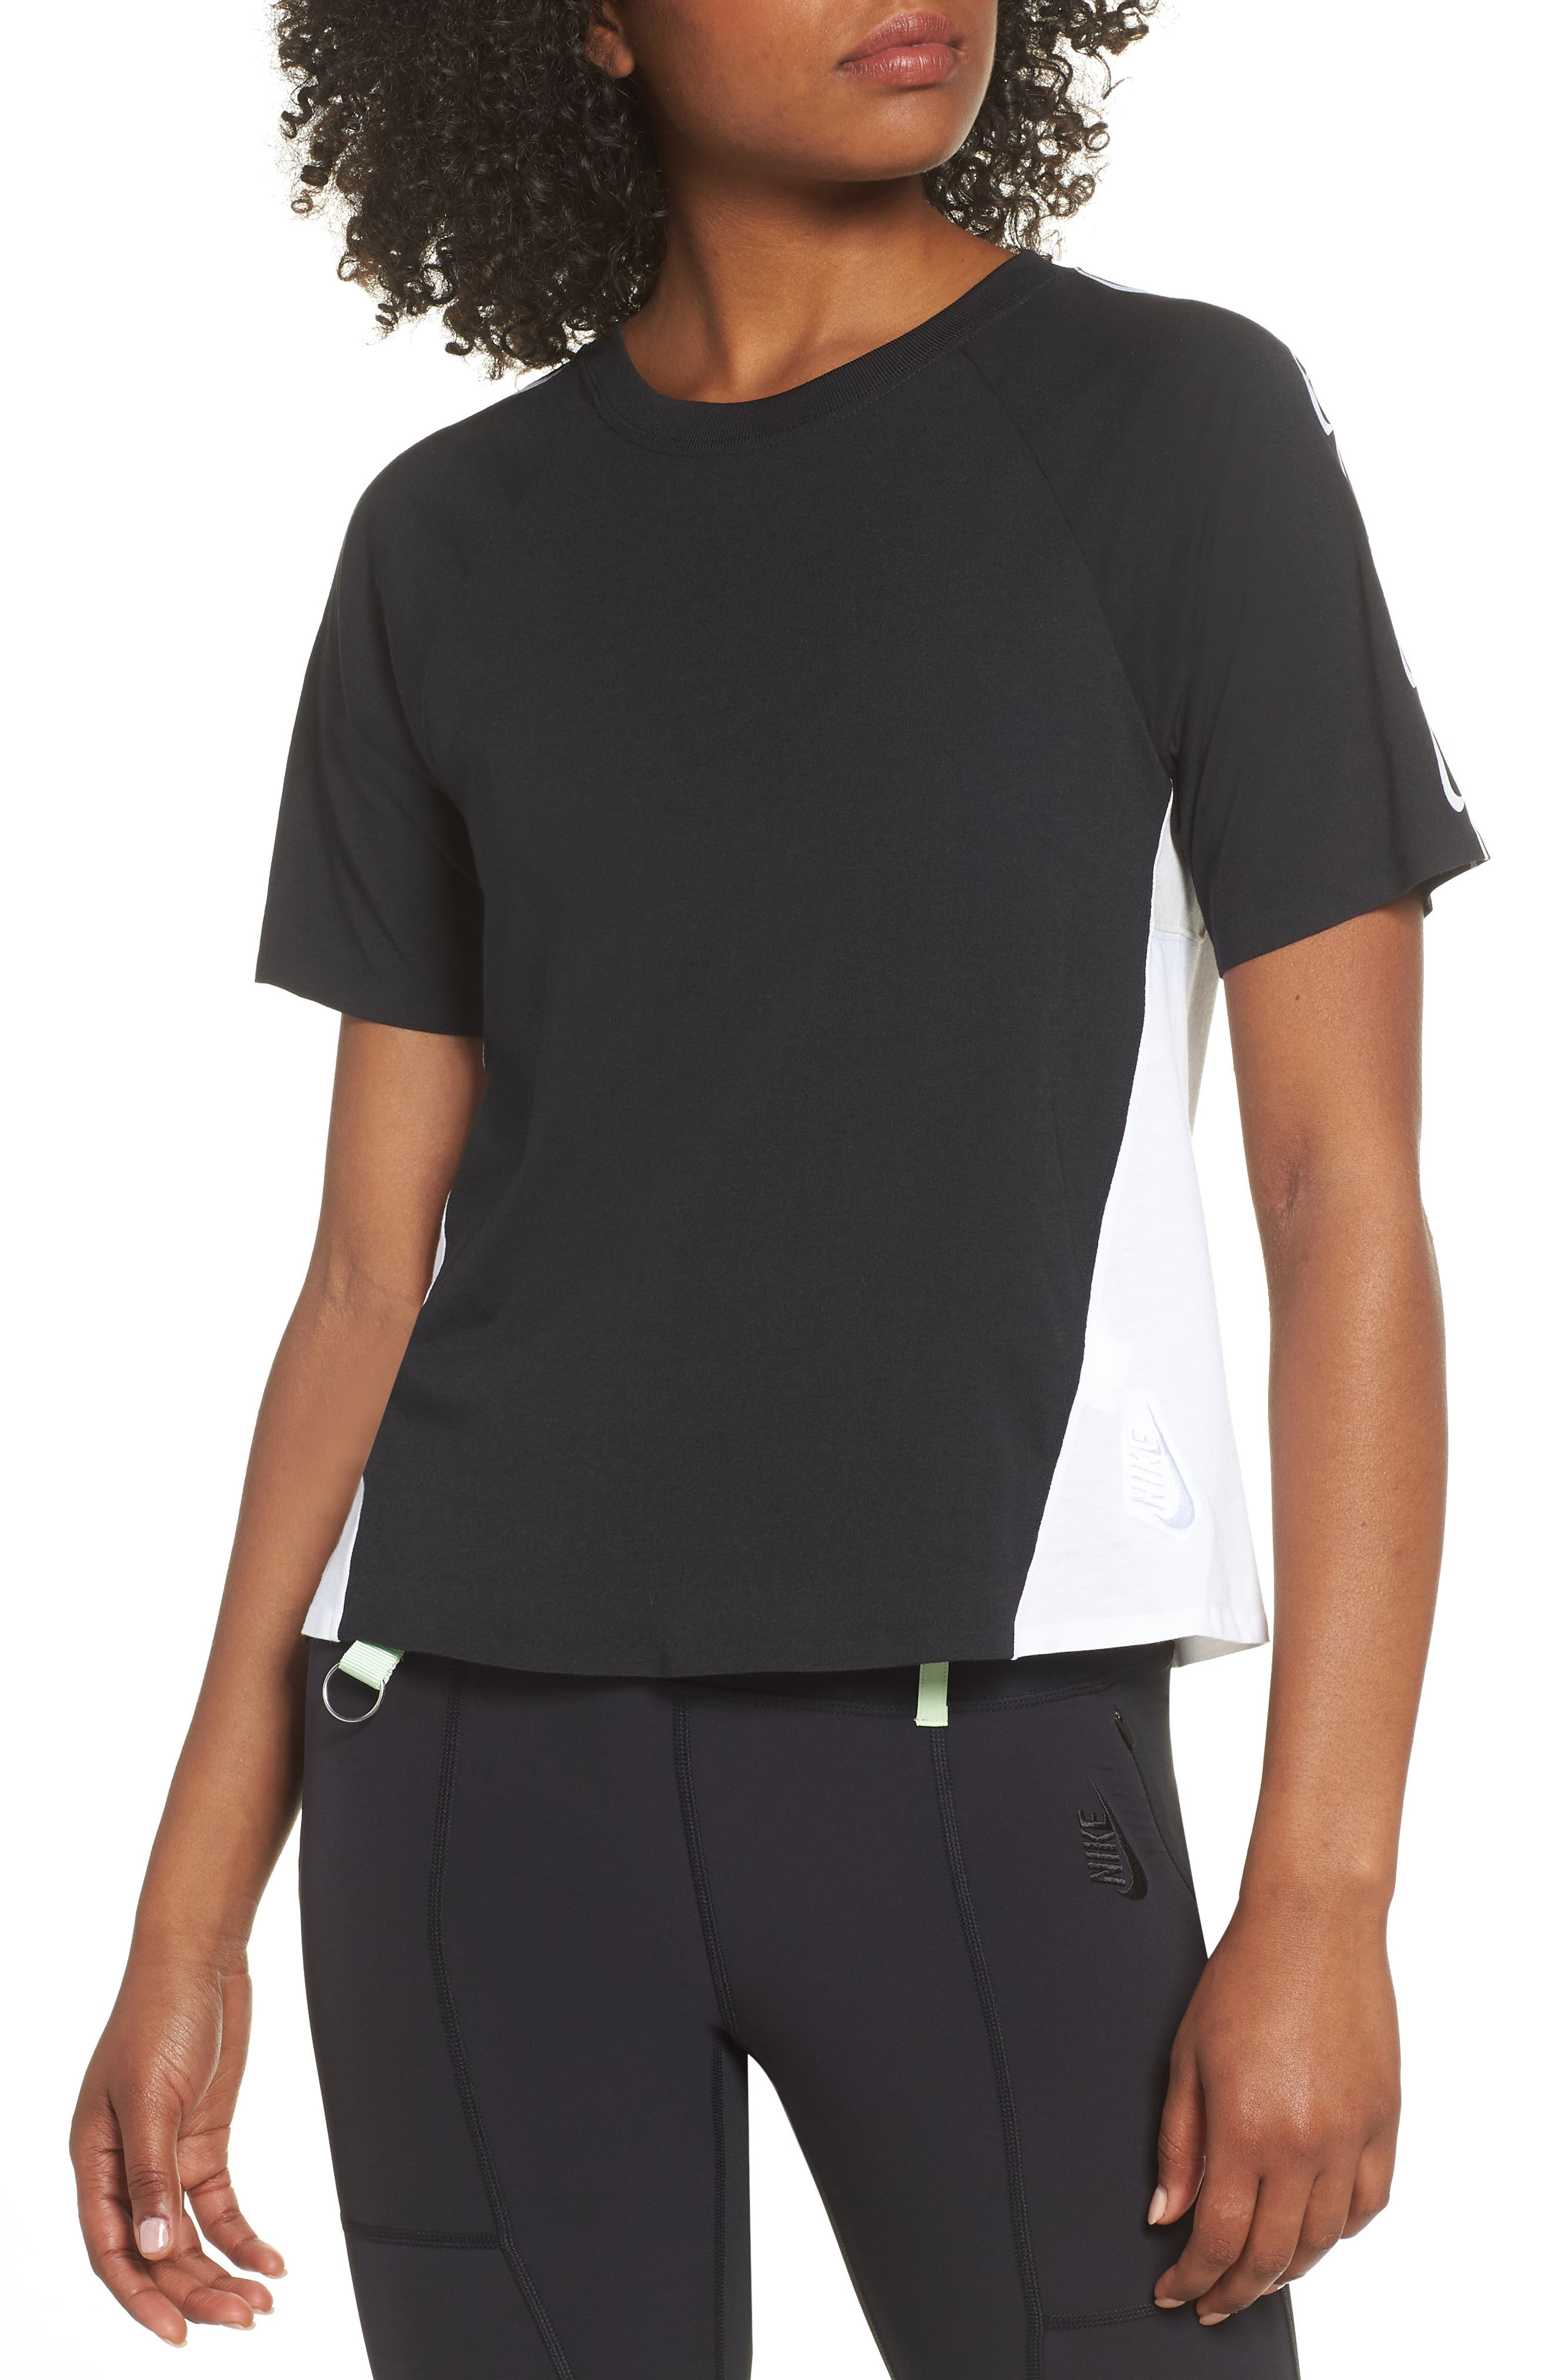 NRG Women's Dri-FIT Short Sleeve Top,                             Main thumbnail 1, color,                             010